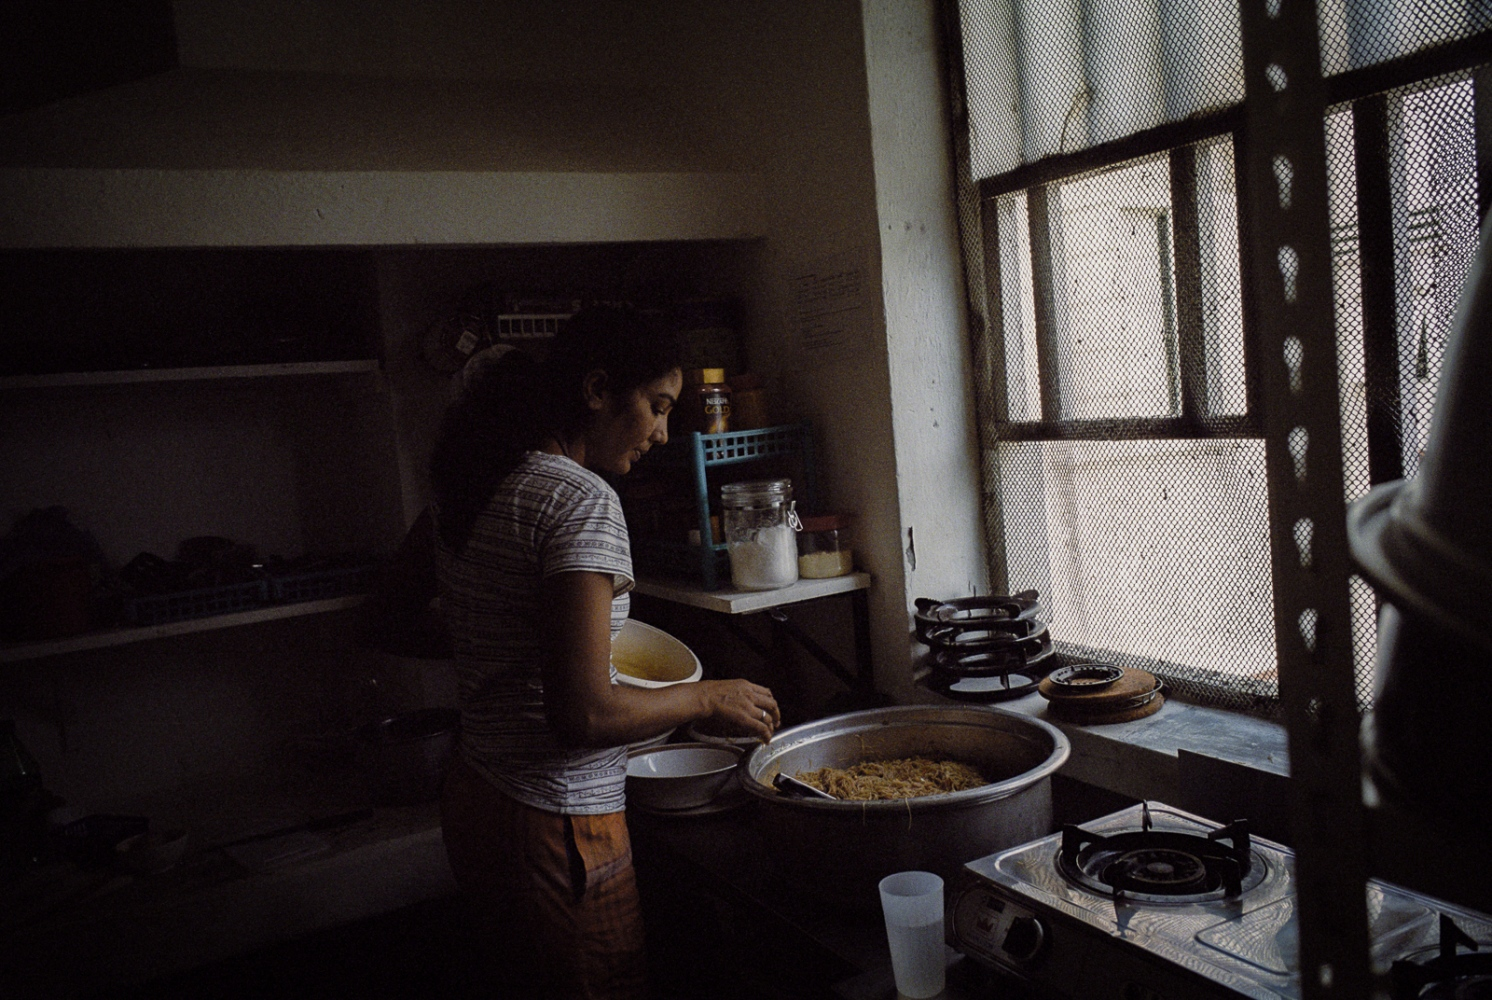 A Foreign domestic worker housed at a shelter run by The Humanitarian Organisation for Migration Economics (HOME), an organisation that provides direct assistance to men and women migrants and victims of human trafficking and forced labour. Abuse of domestic workers ranges from physical and verbal abuse, sexual assault, punative action for perceived wrongs, violation of contracted rights and witheld pay. As Foreign domestic workers in Singapore are required by law to live with their employer, many who suffer abuses feel they have no choice but to run away and seek shelter with their embassy or NGOs such as HOME.